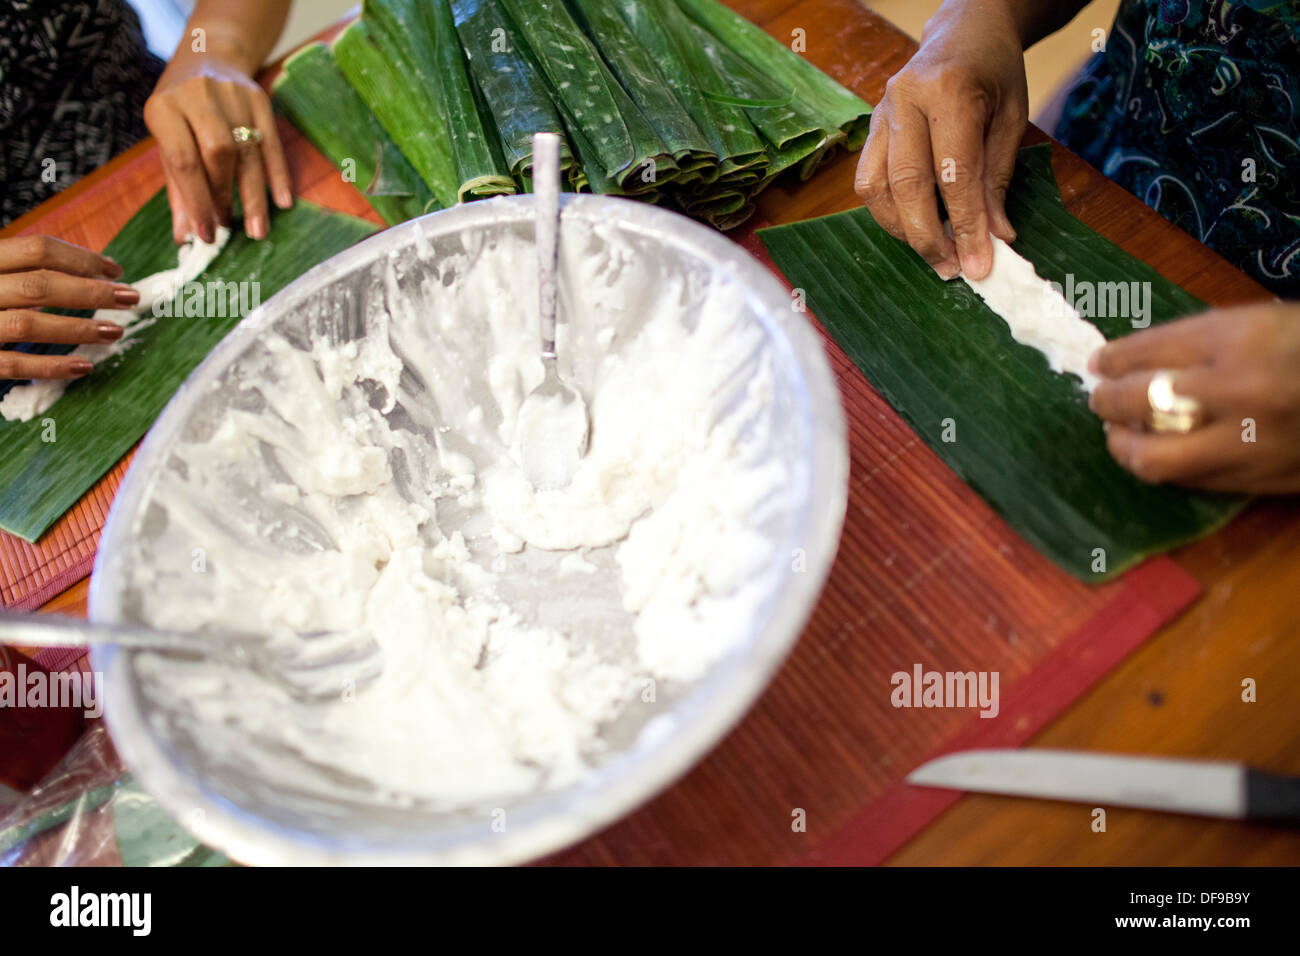 food banana leaves stockfotos food banana leaves bilder alamy. Black Bedroom Furniture Sets. Home Design Ideas